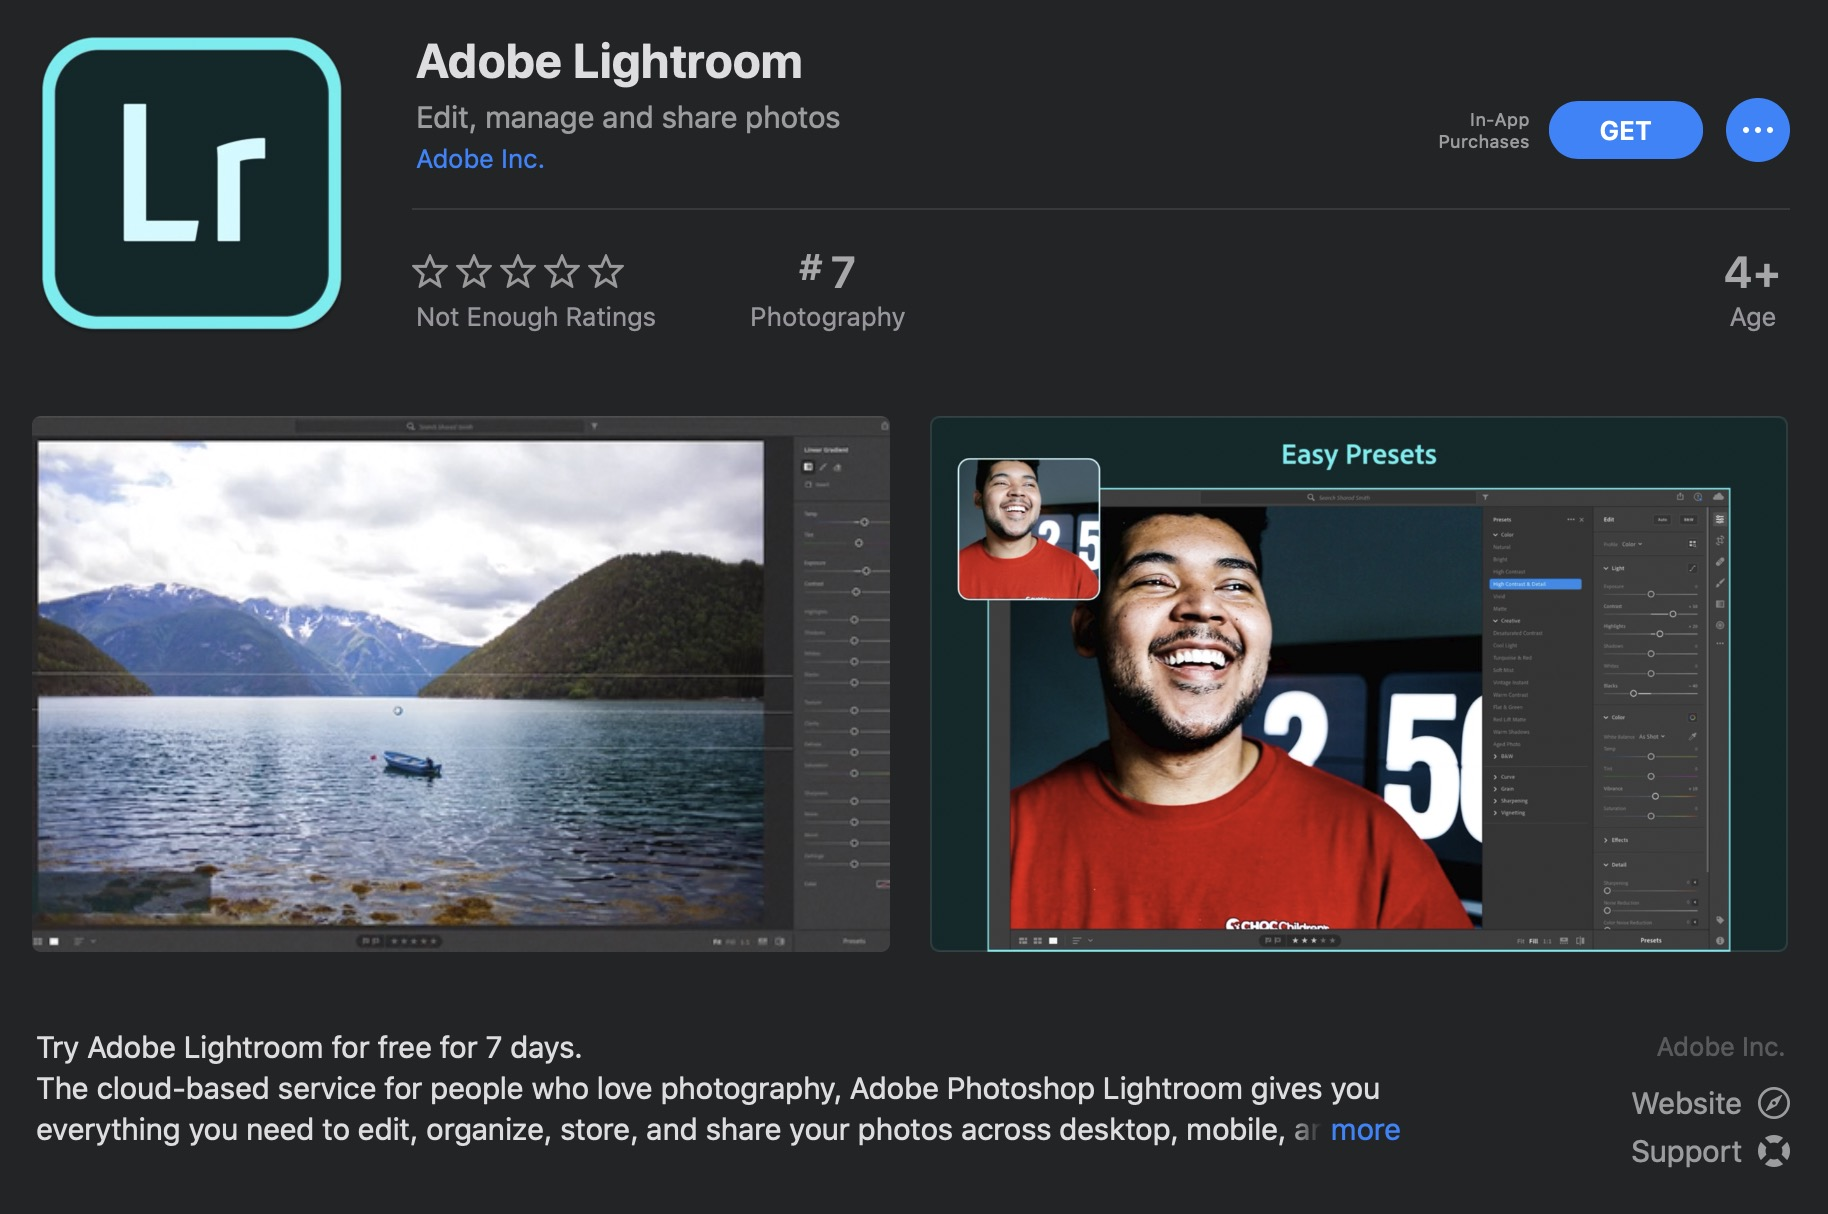 Adobe Lightroom is now available on Apple's Mac App Store for the